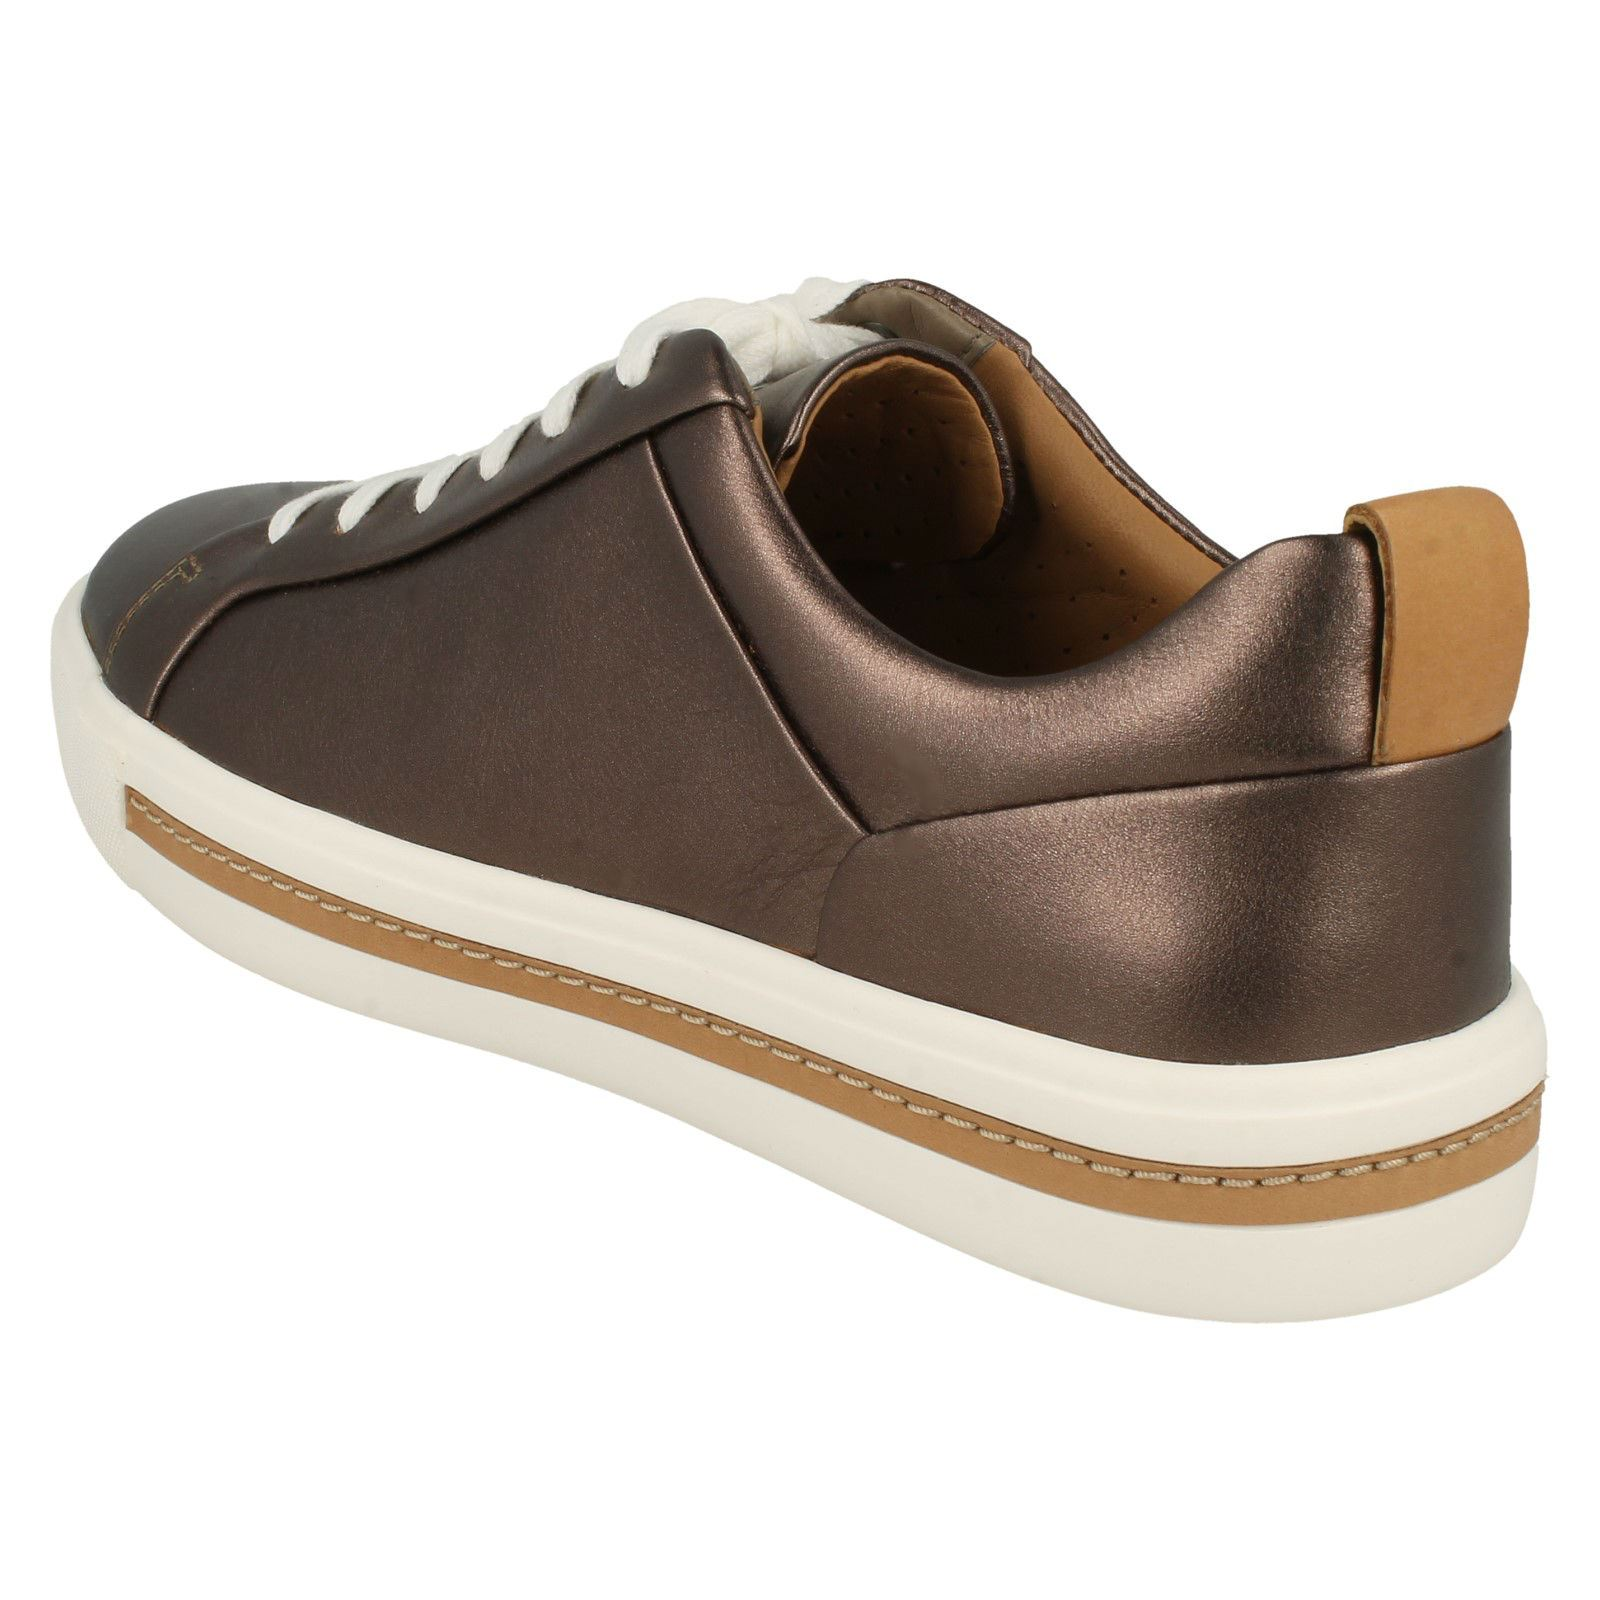 'un Pebble Clarks Lace' Maui Trainers Ladies dorado Stylish Lace Up nc61Axx4Sq